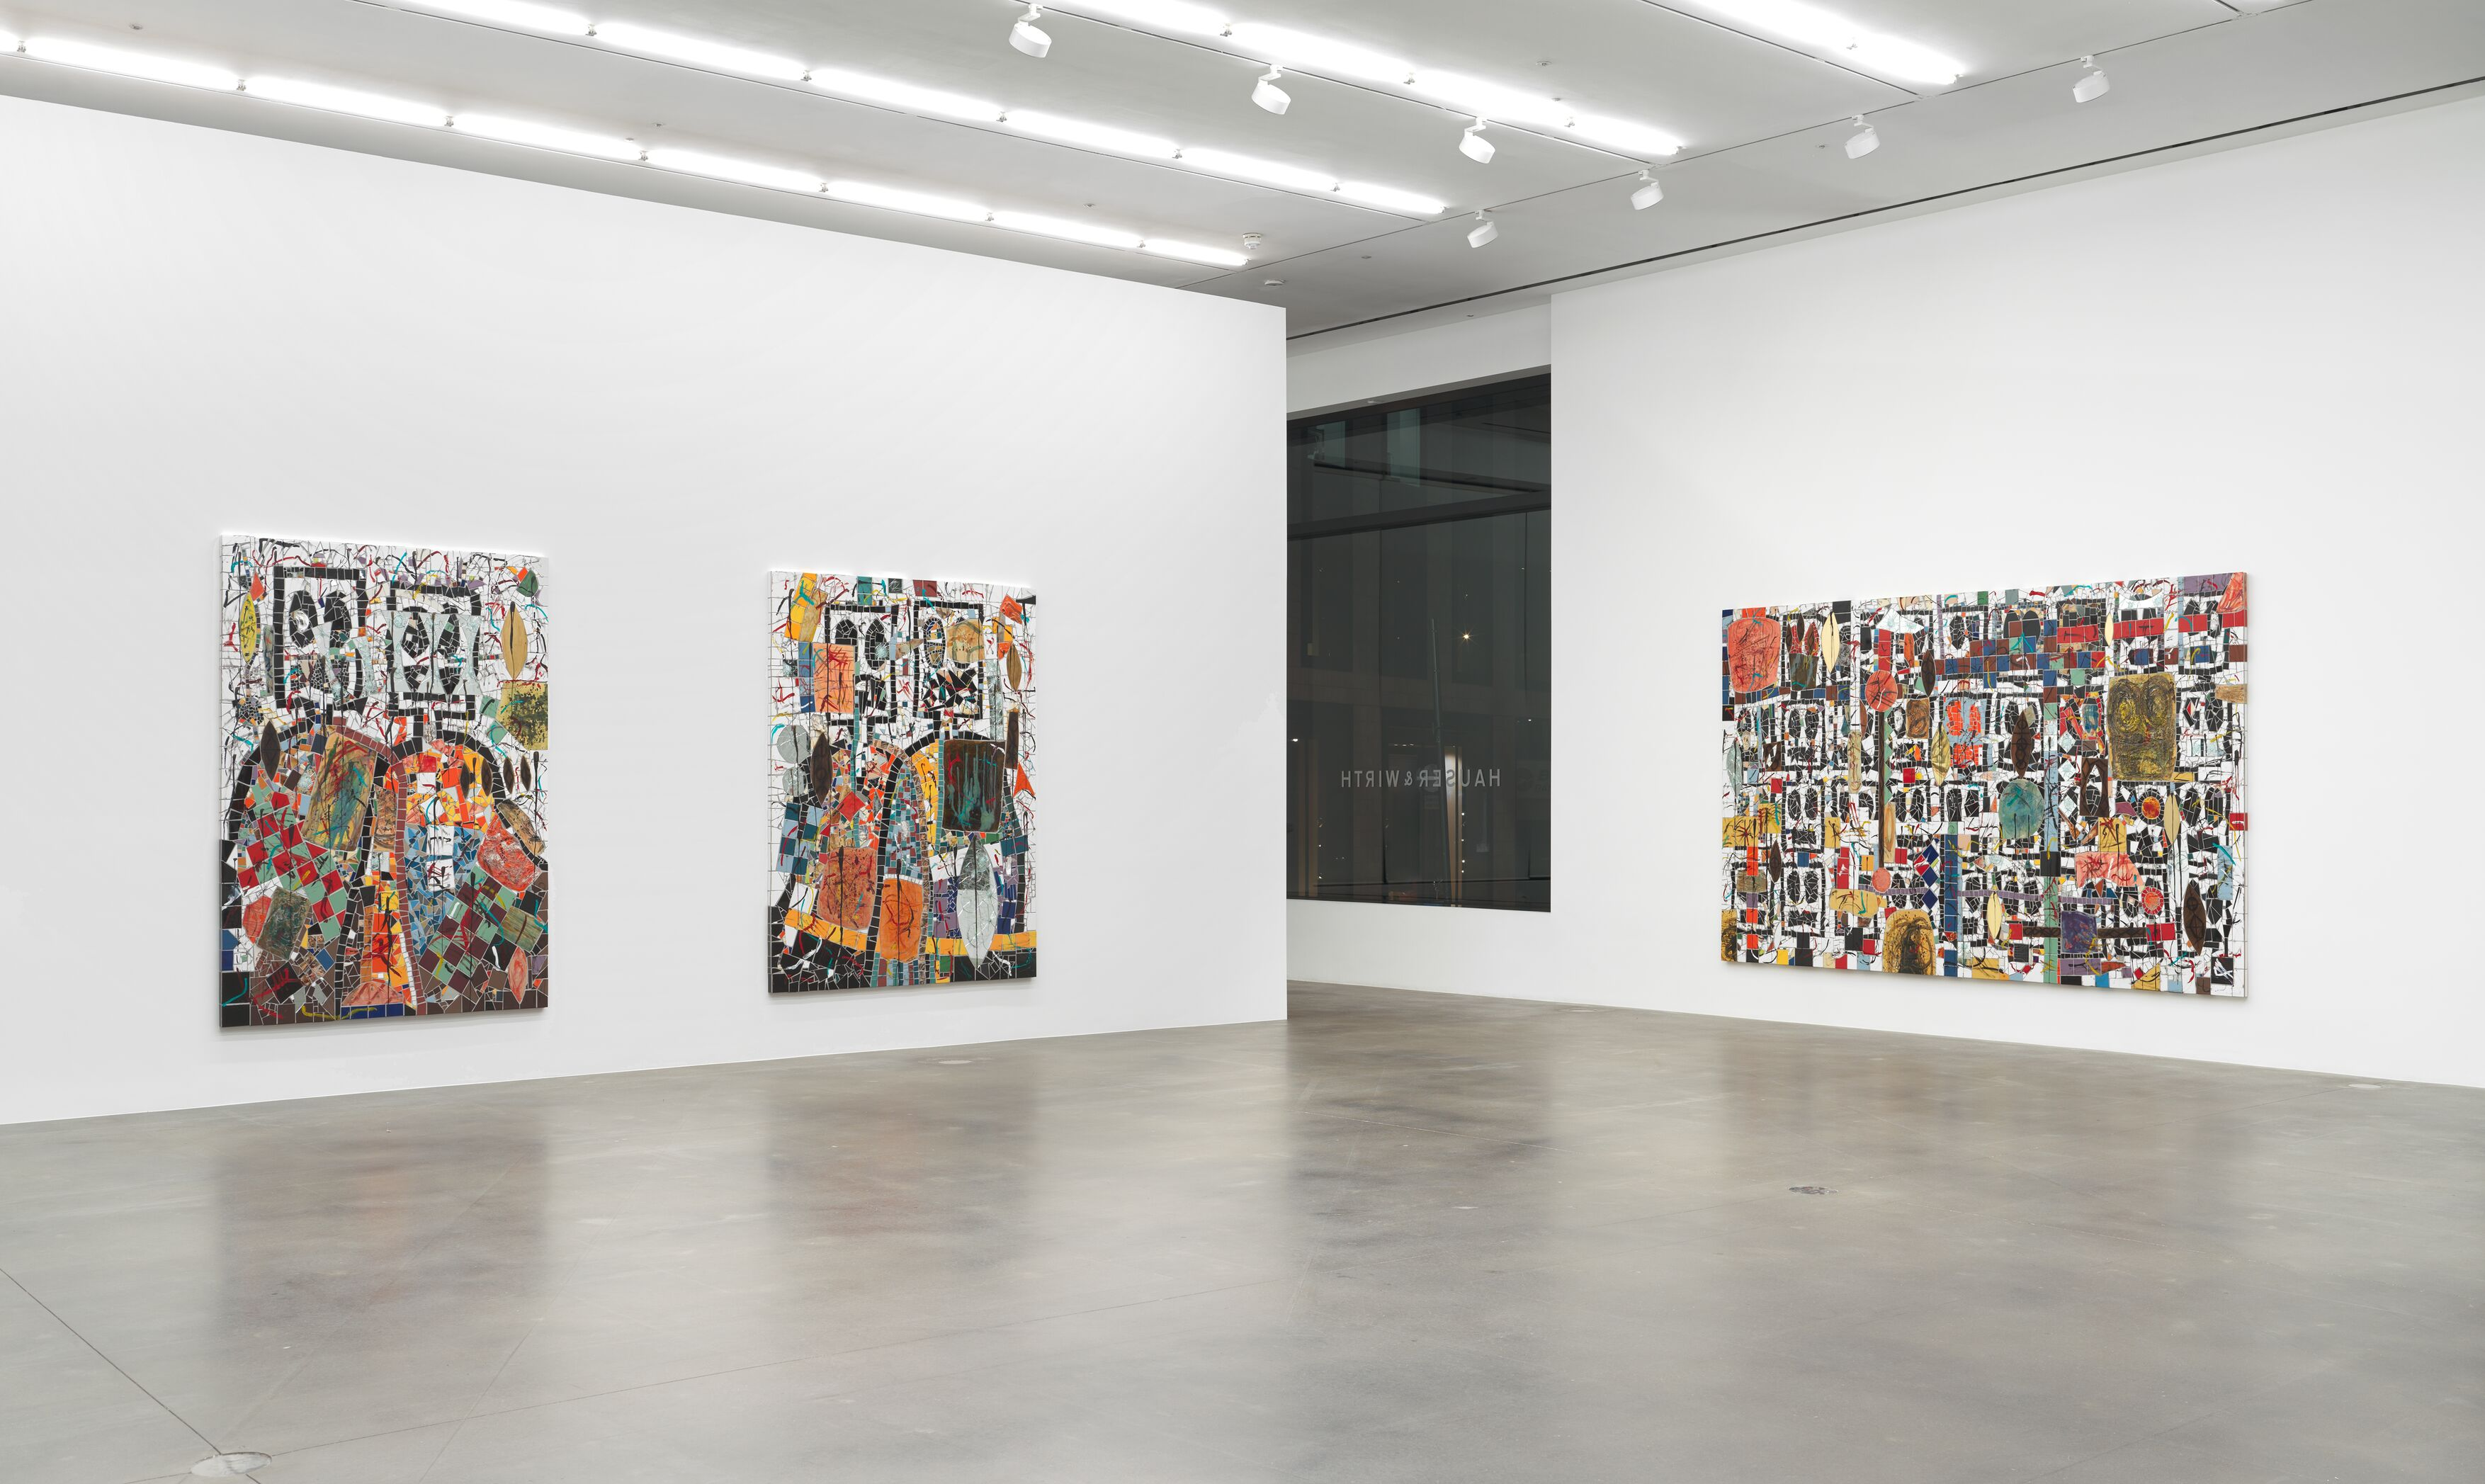 Installation view 7, Rashid Johnson, Waves, Hauser & Wirth London, Courtesy of the artist and Hauser & Wirth